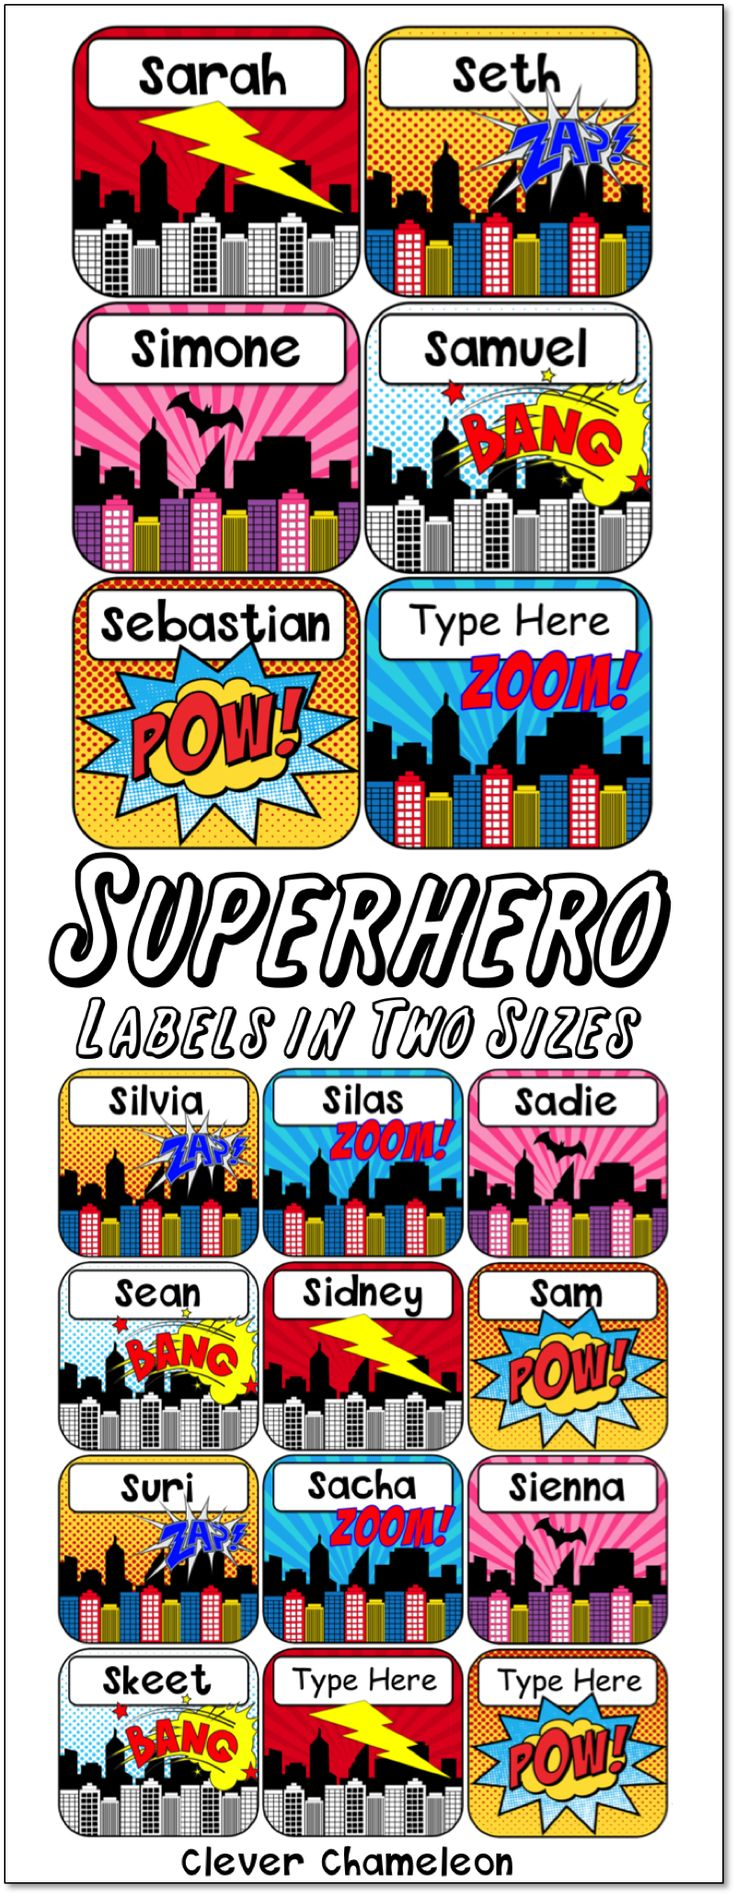 Superhero Labels in Two Sizes available at Clever Chameleon TPT